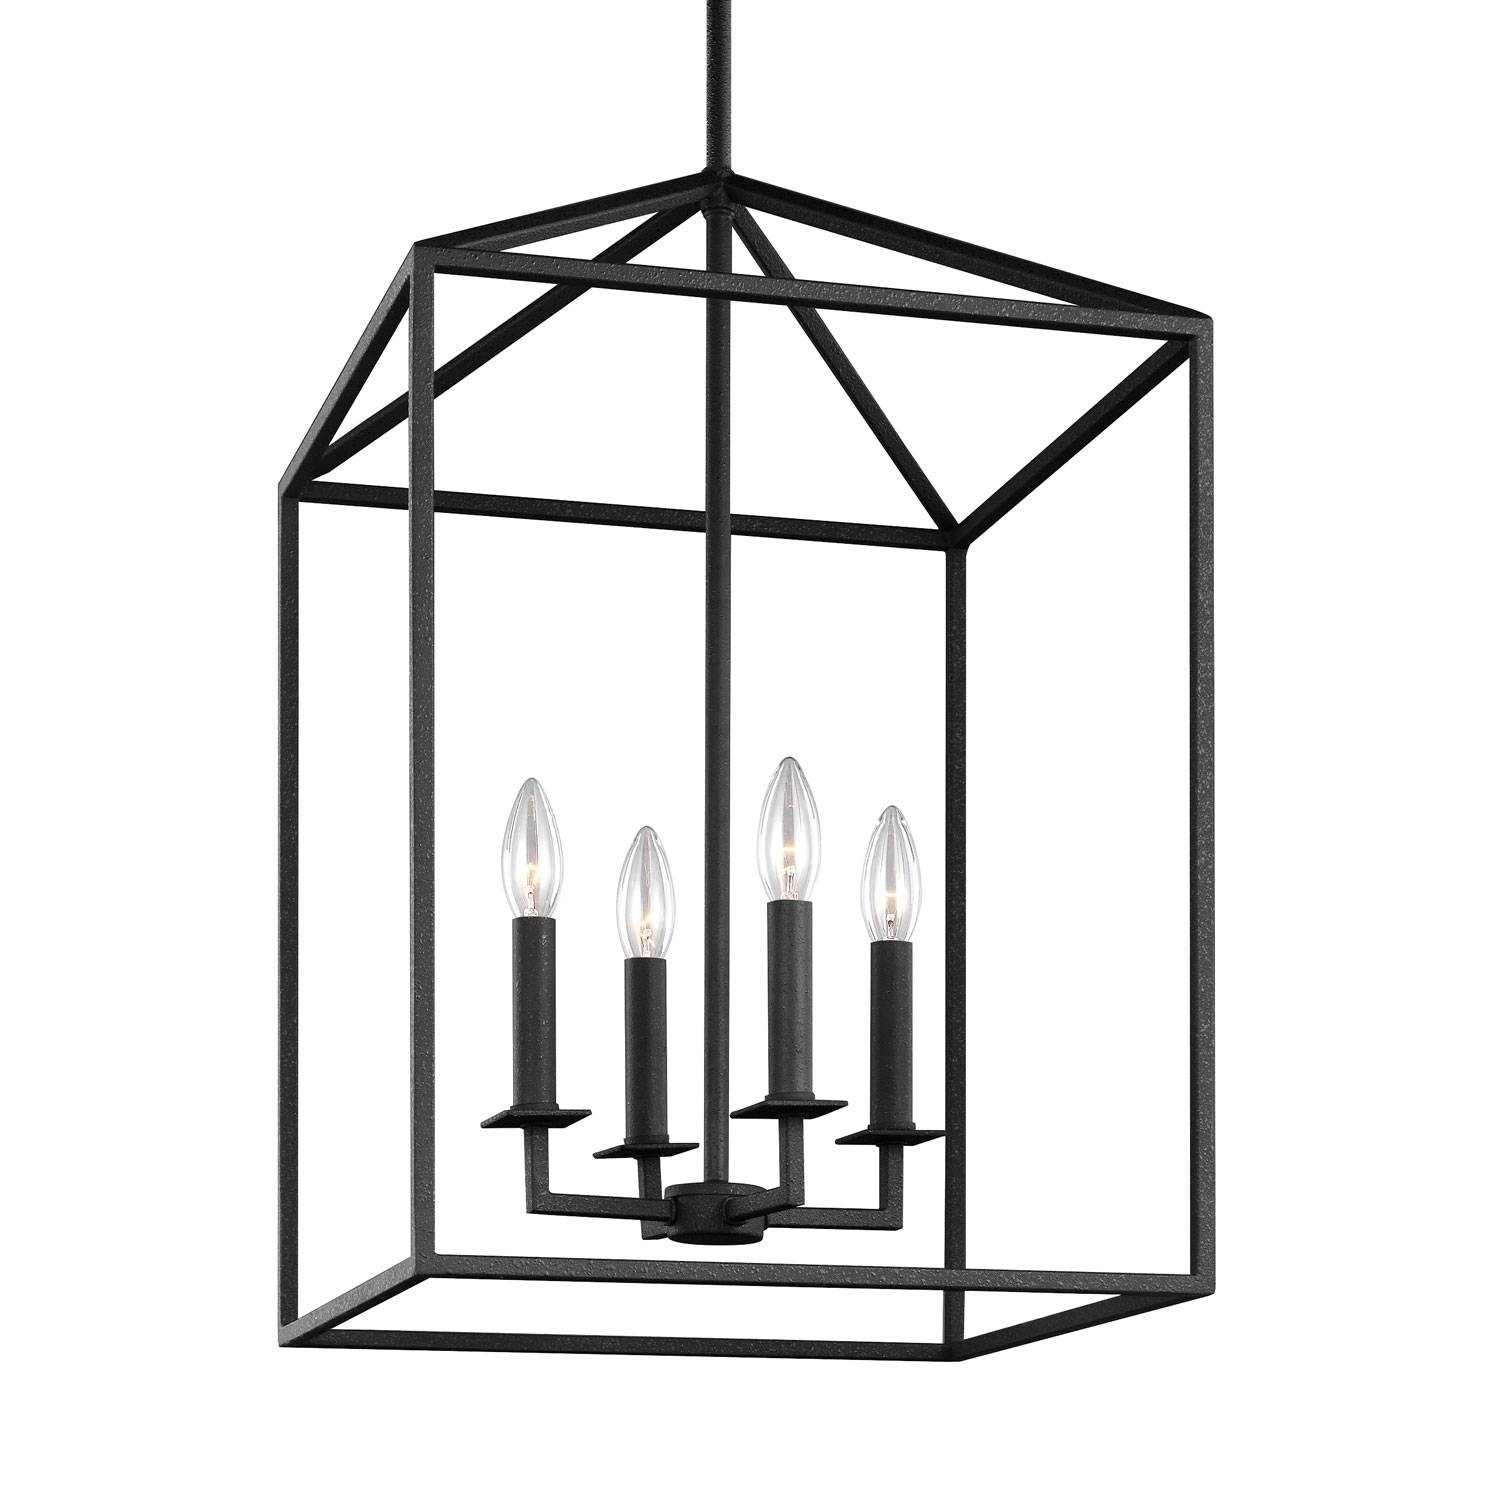 Sea Gull Lighting Perryton Blacksmith 12.5 Inch Four Light Lantern throughout Carriage Pendant Lights (Image 10 of 15)